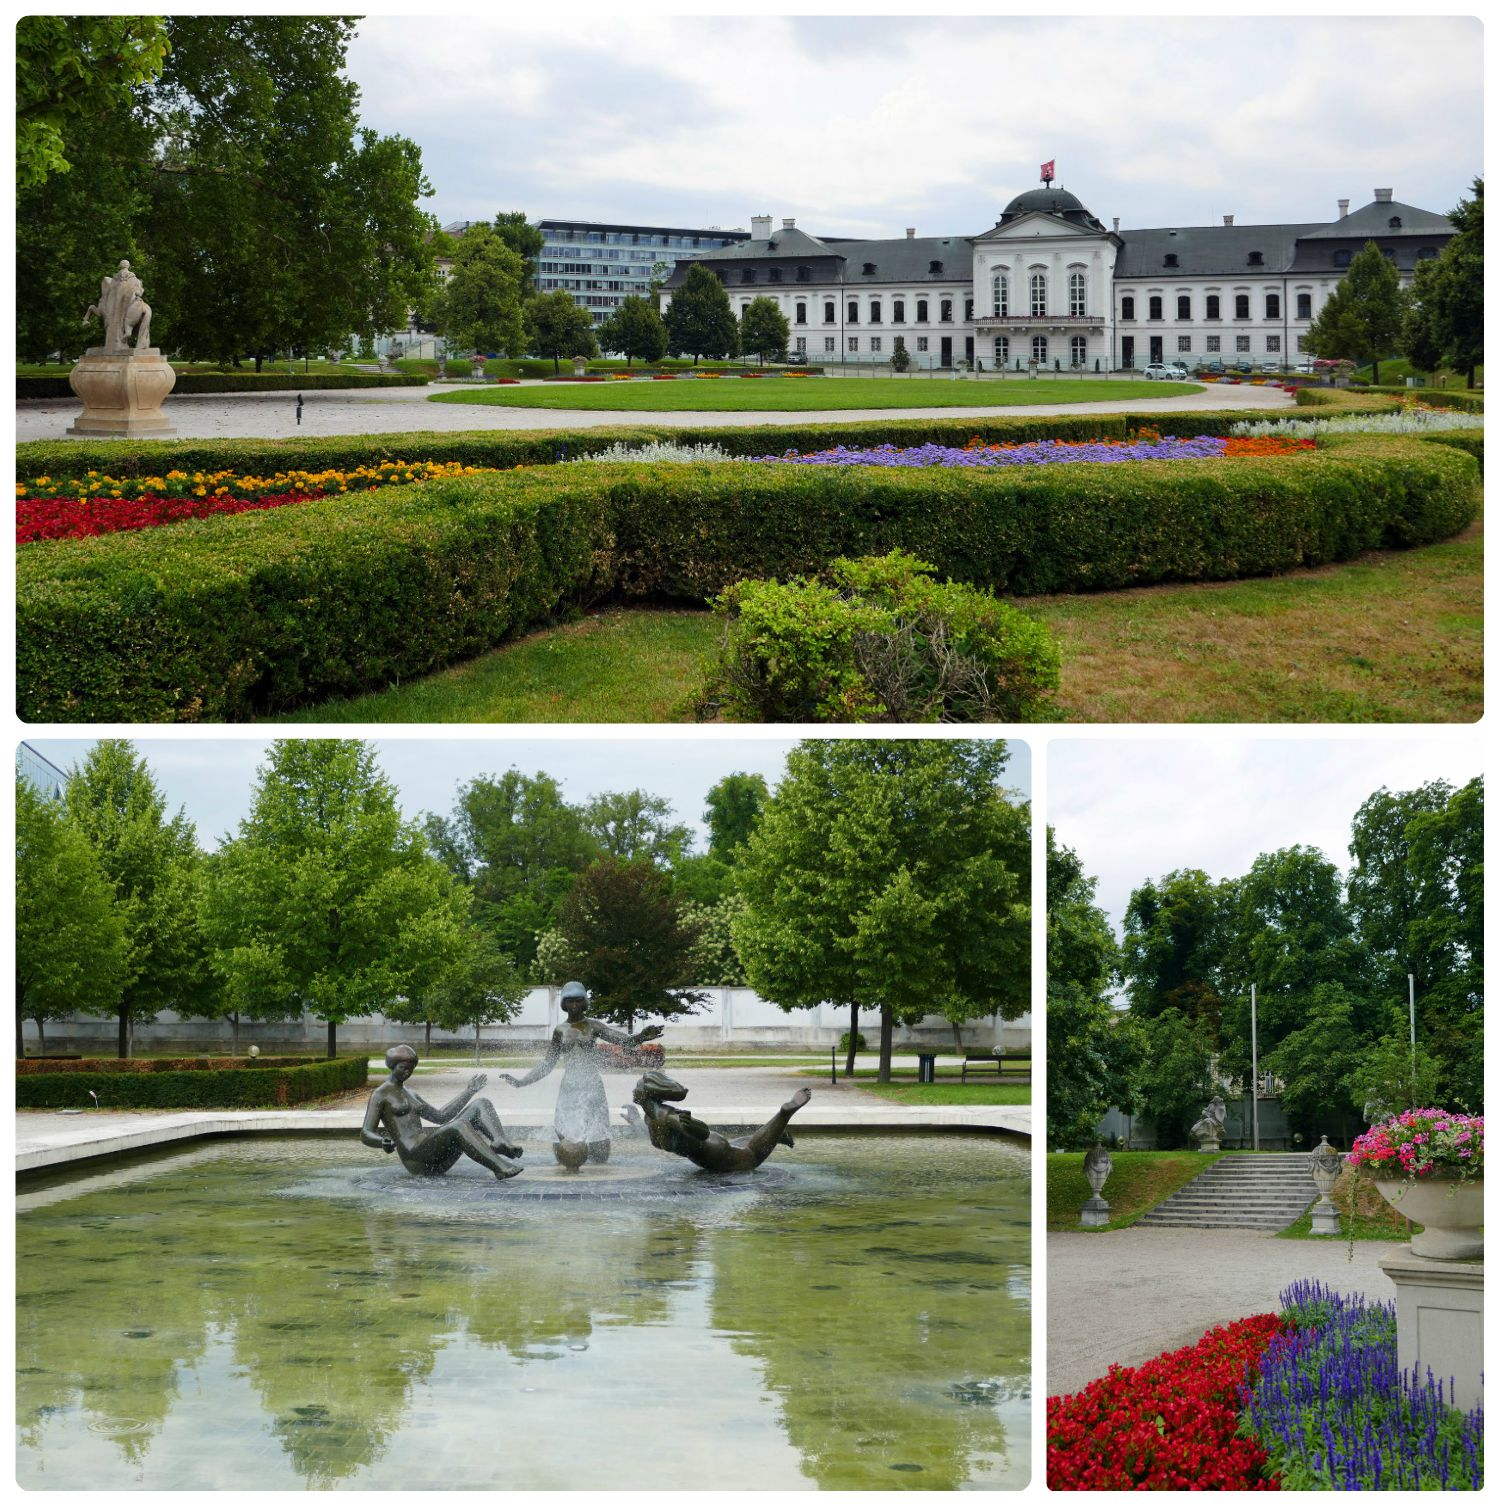 The gardens behind the Presidential Palace are full of gorgeous flowers, sculptures, artwork.